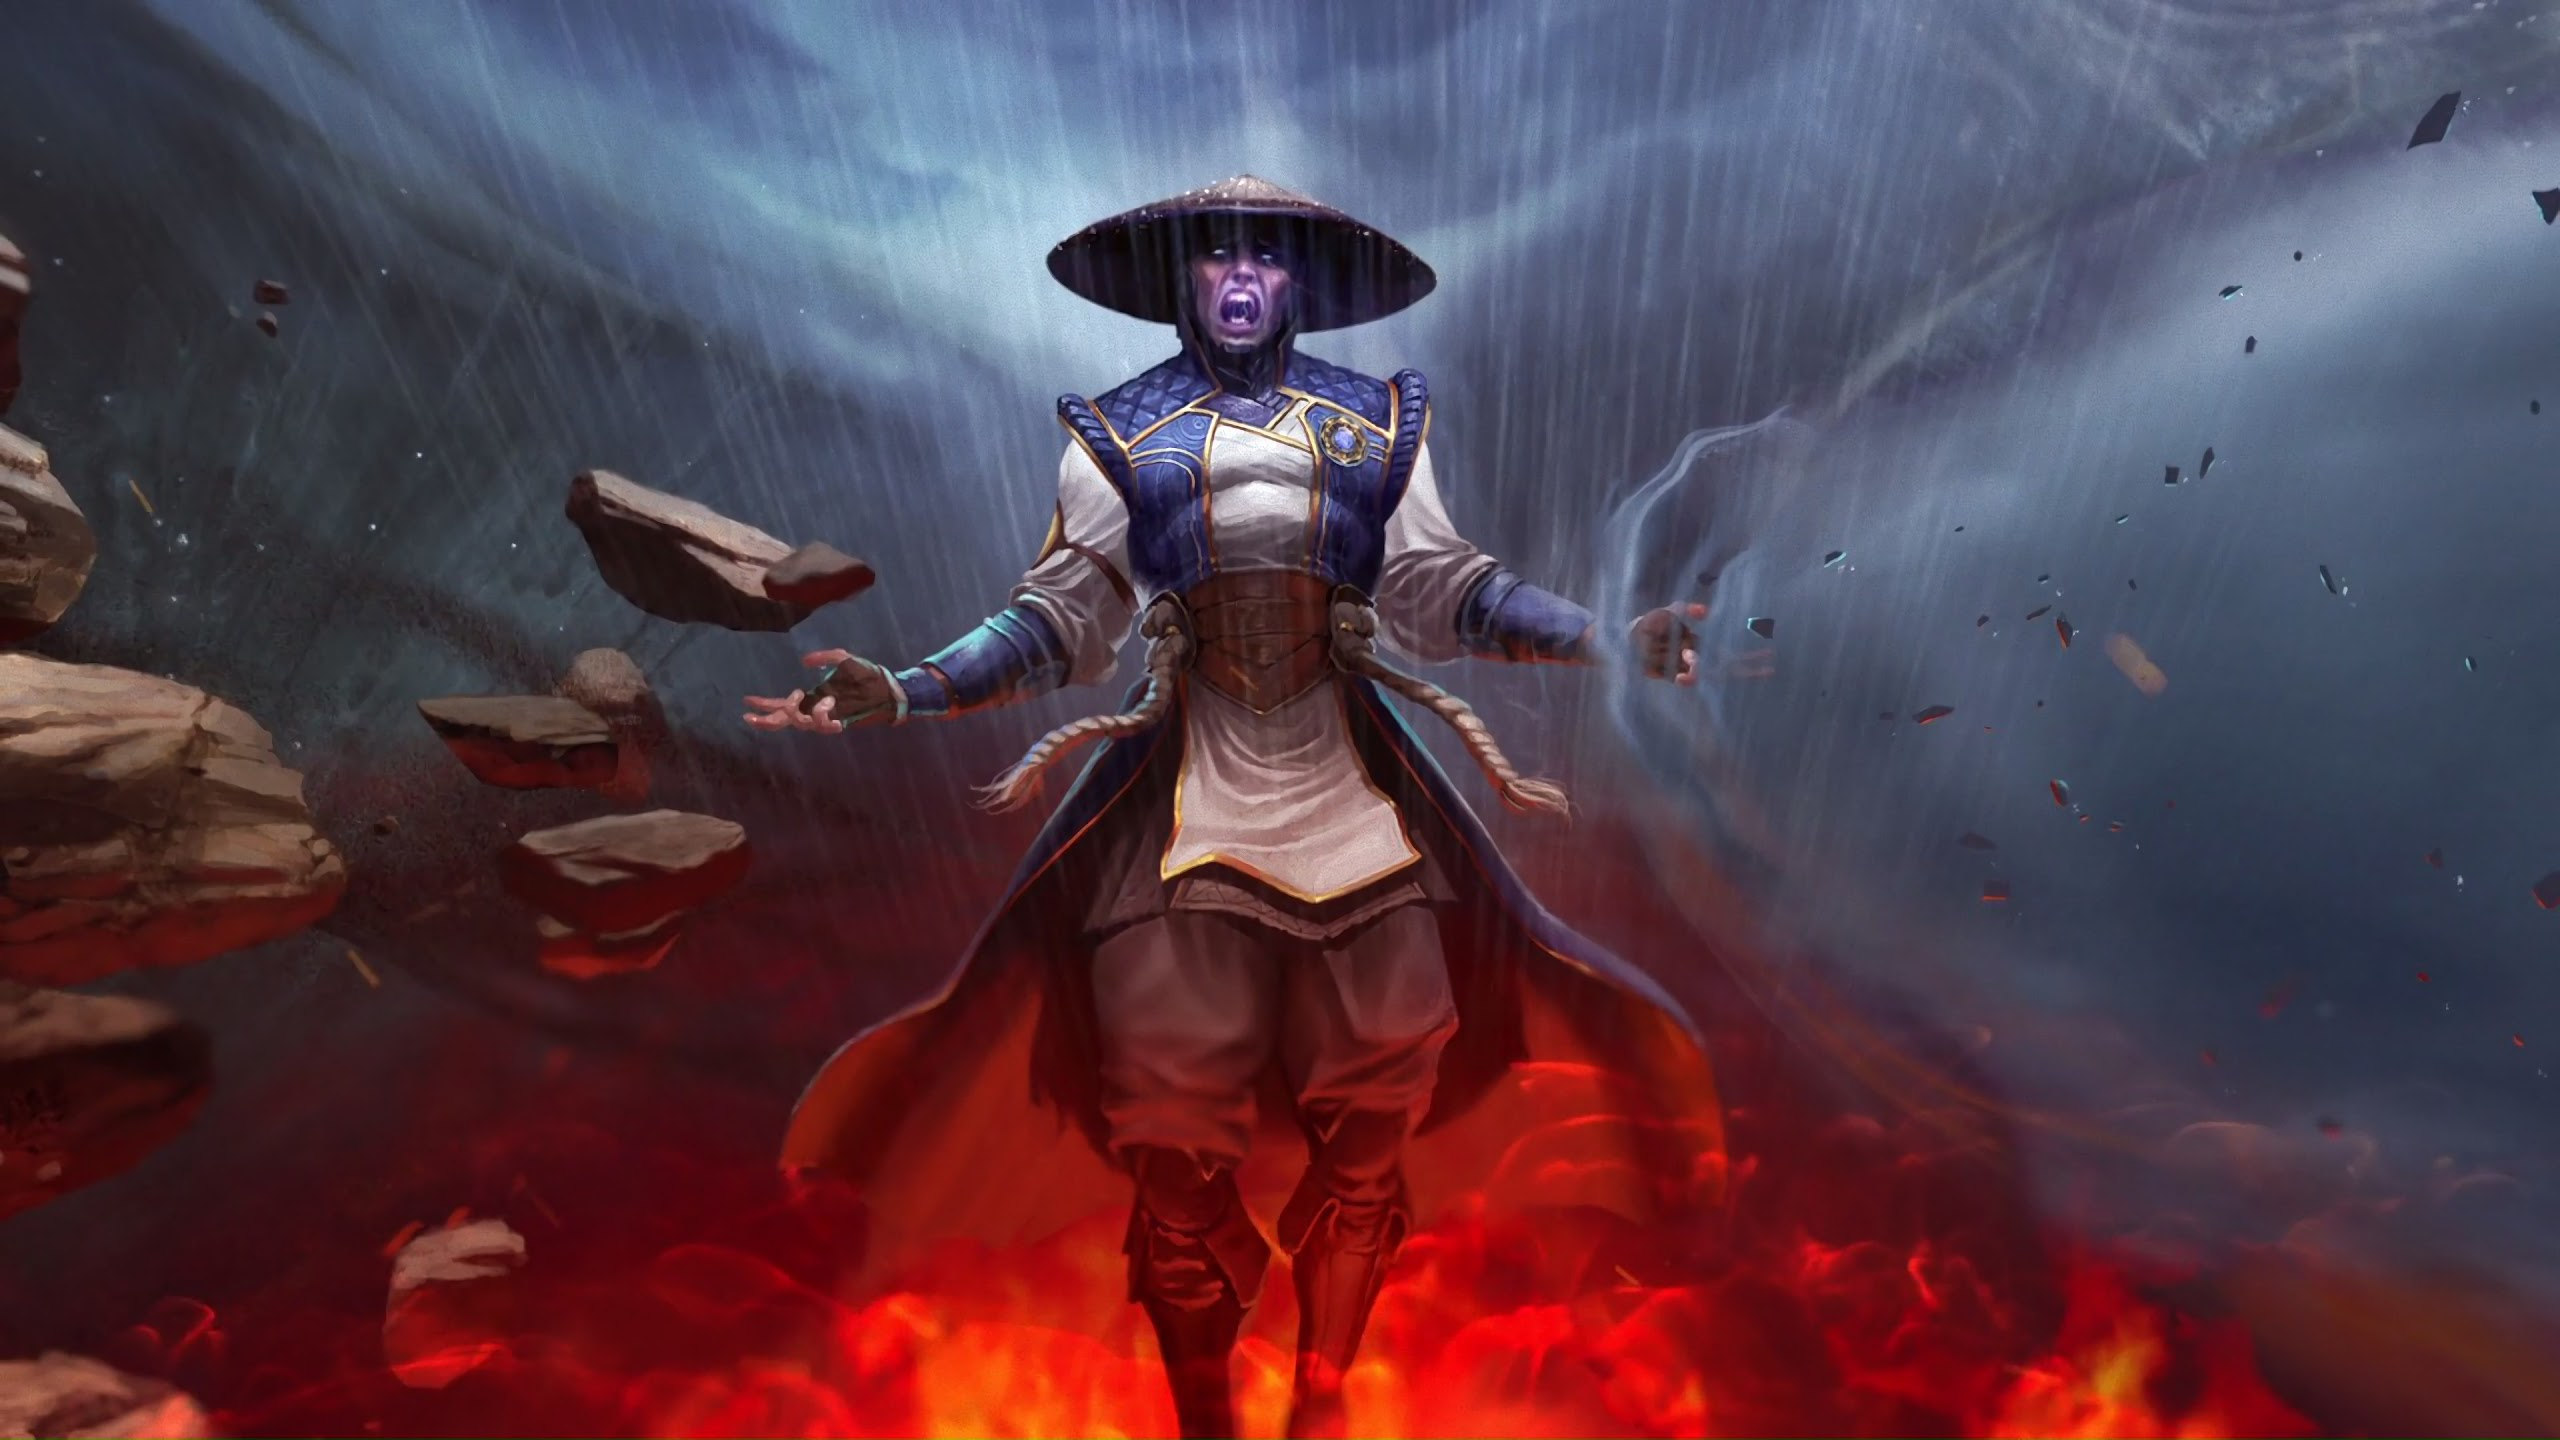 Raiden Mortal Kombat Wallpapers Posted By Michelle Cunningham